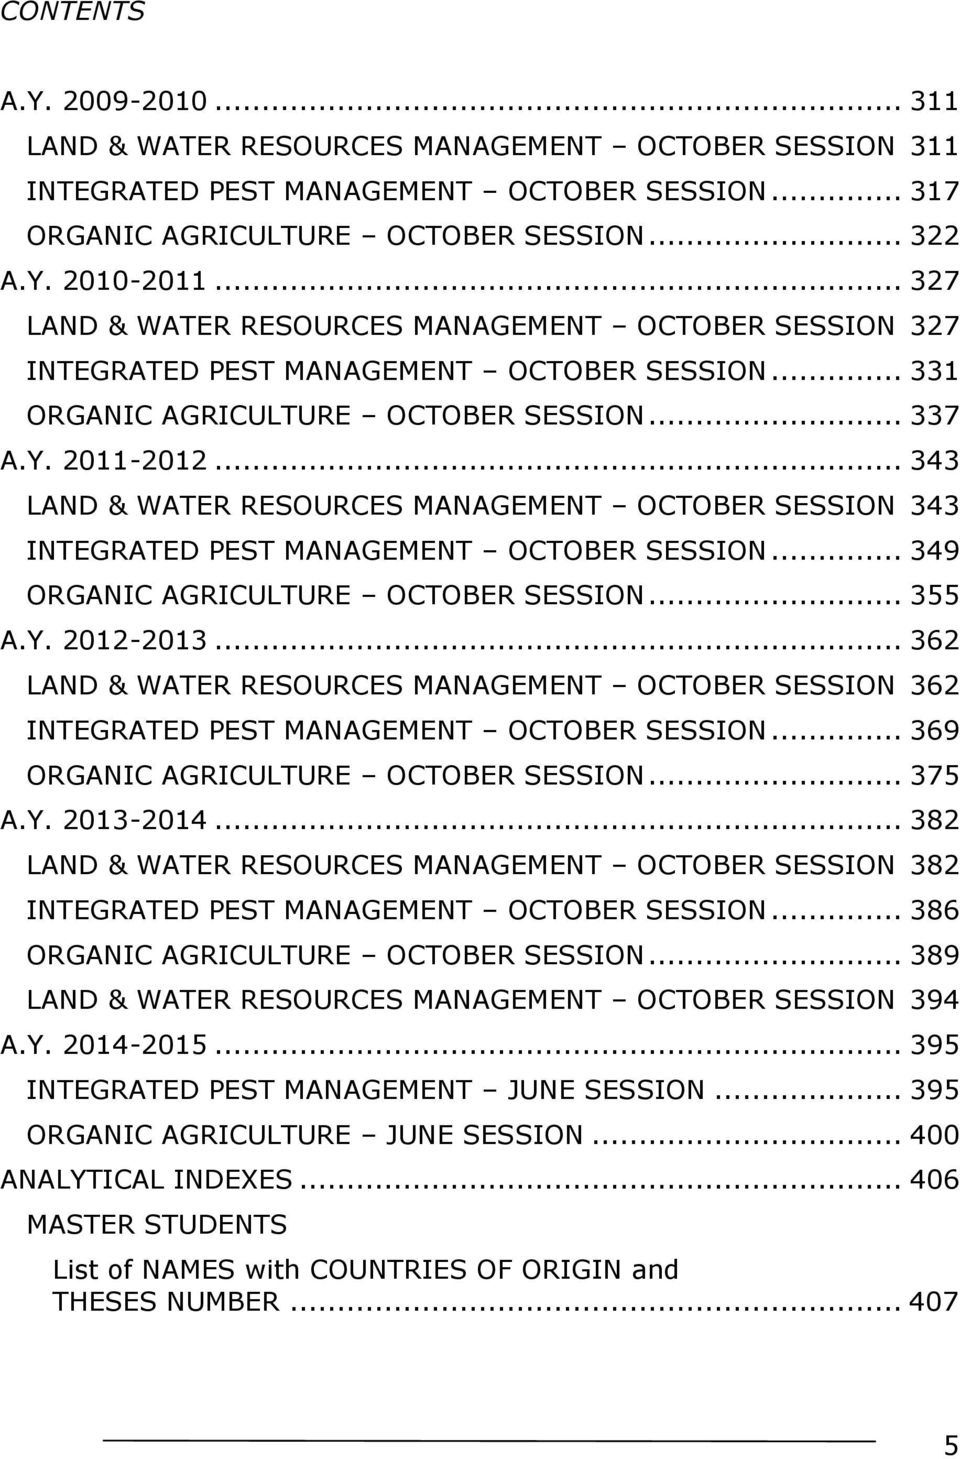 .. 343 LAND & WATER RESOURCES MANAGEMENT OCTOBER SESSION 343 INTEGRATED PEST MANAGEMENT OCTOBER SESSION... 349 ORGANIC AGRICULTURE OCTOBER SESSION... 355 A.Y. 2012-2013.